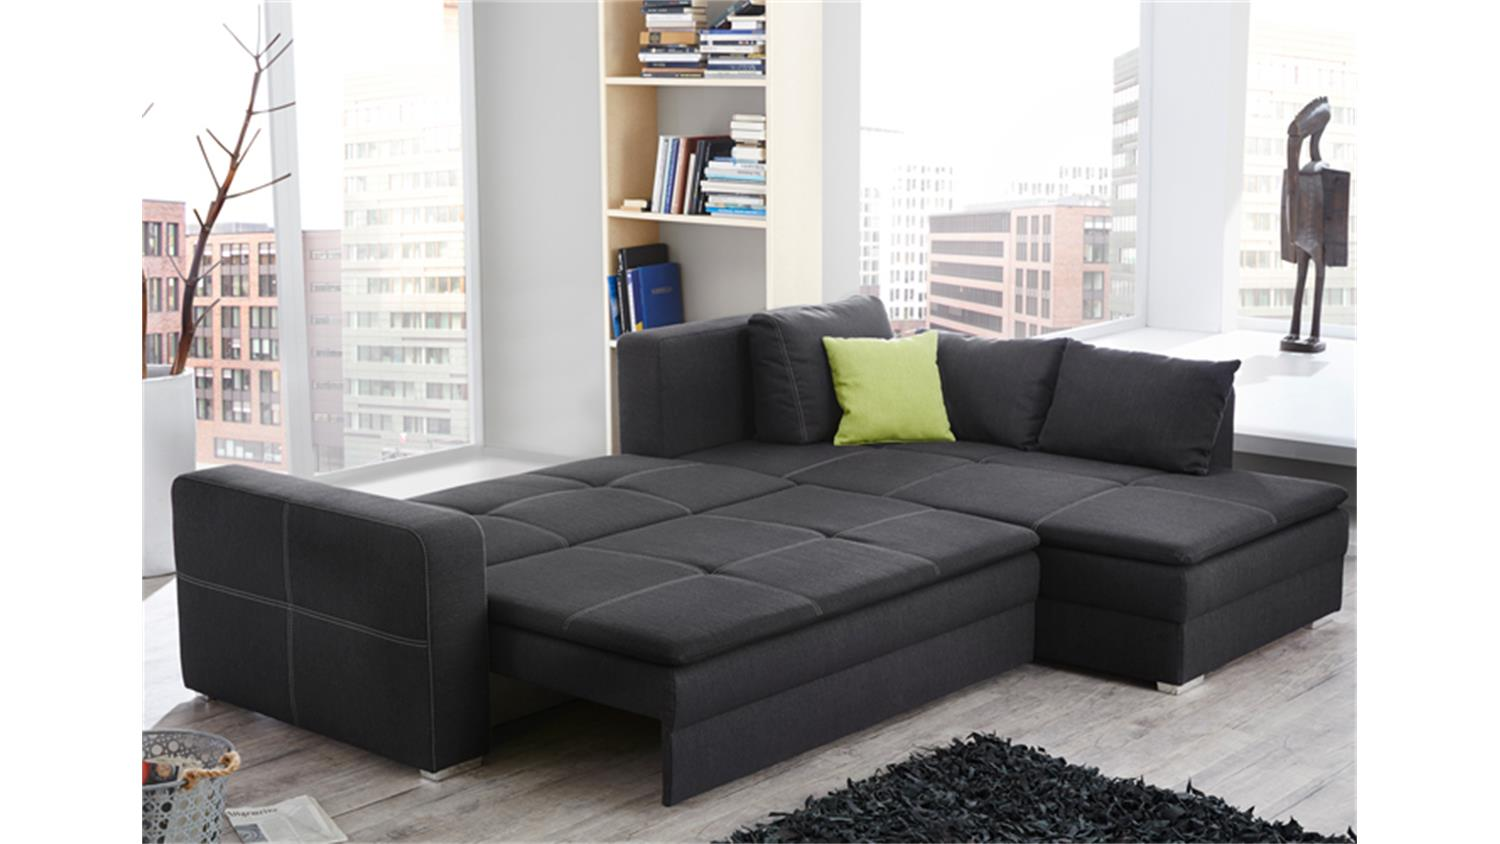 ecksofa domino stoff dunkelgrau mit bettfunktion produktvideo. Black Bedroom Furniture Sets. Home Design Ideas